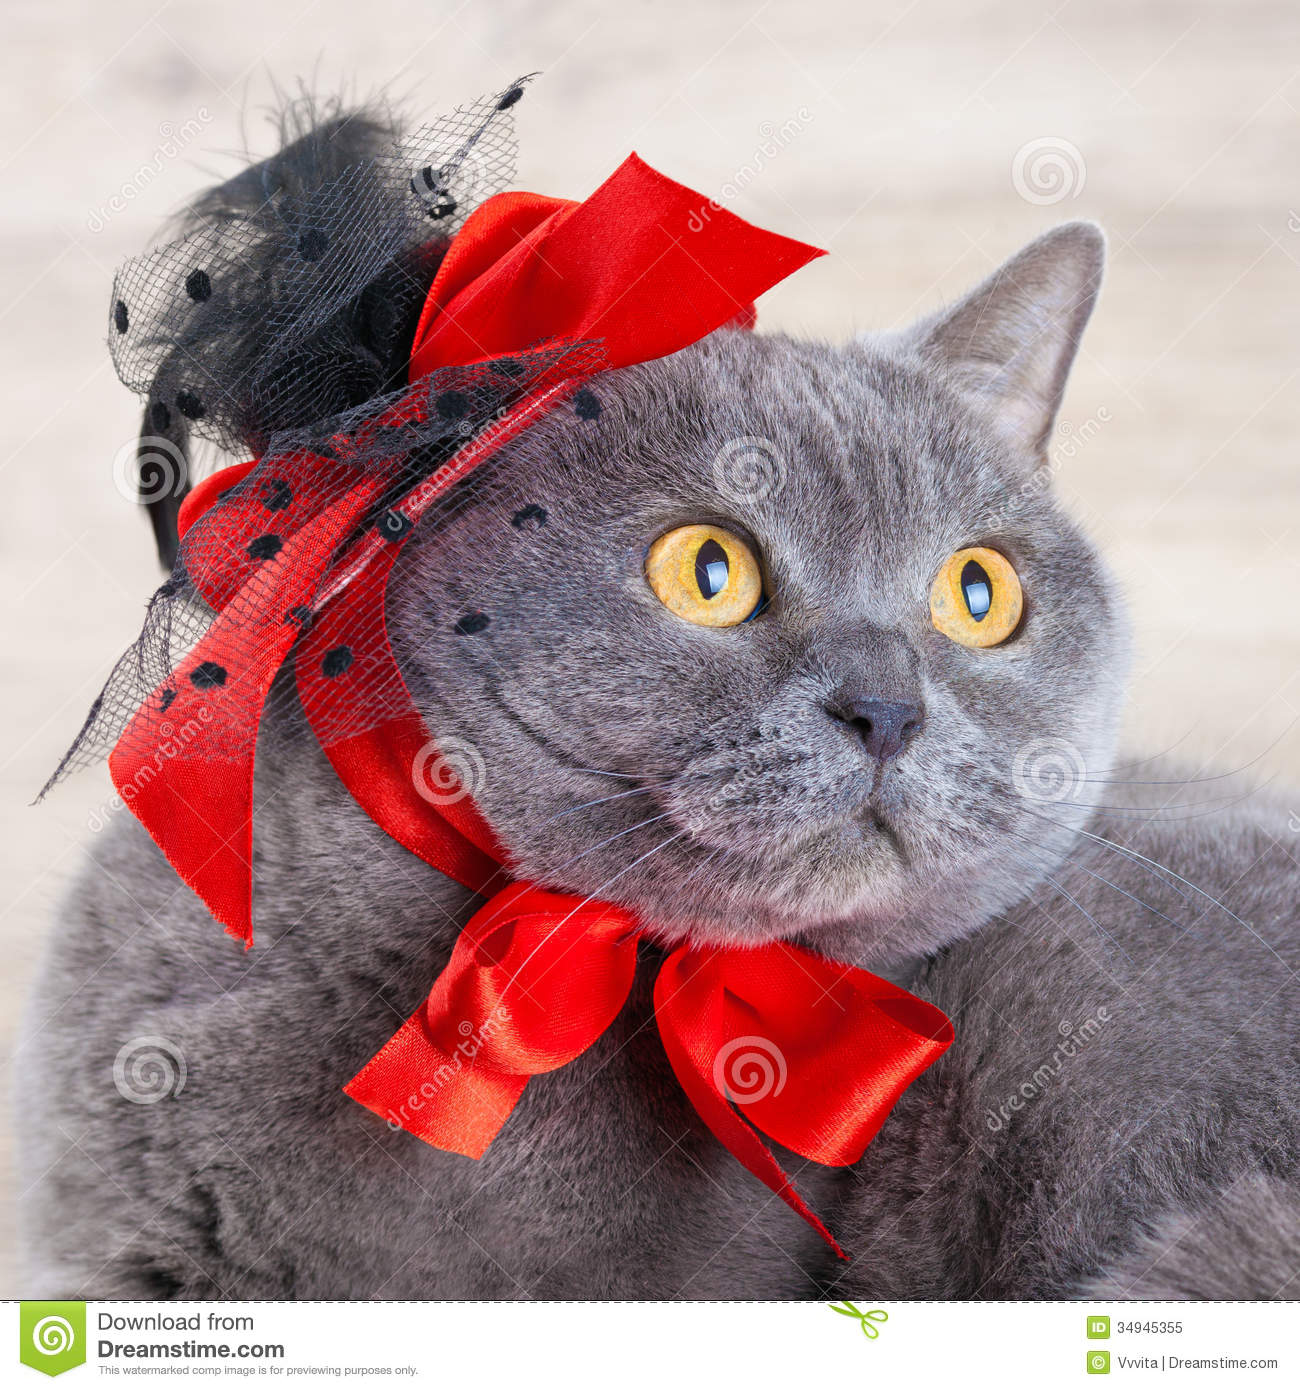 Cat Wearing Red Hat Royalty Free Stock Photo - Image: 34945355